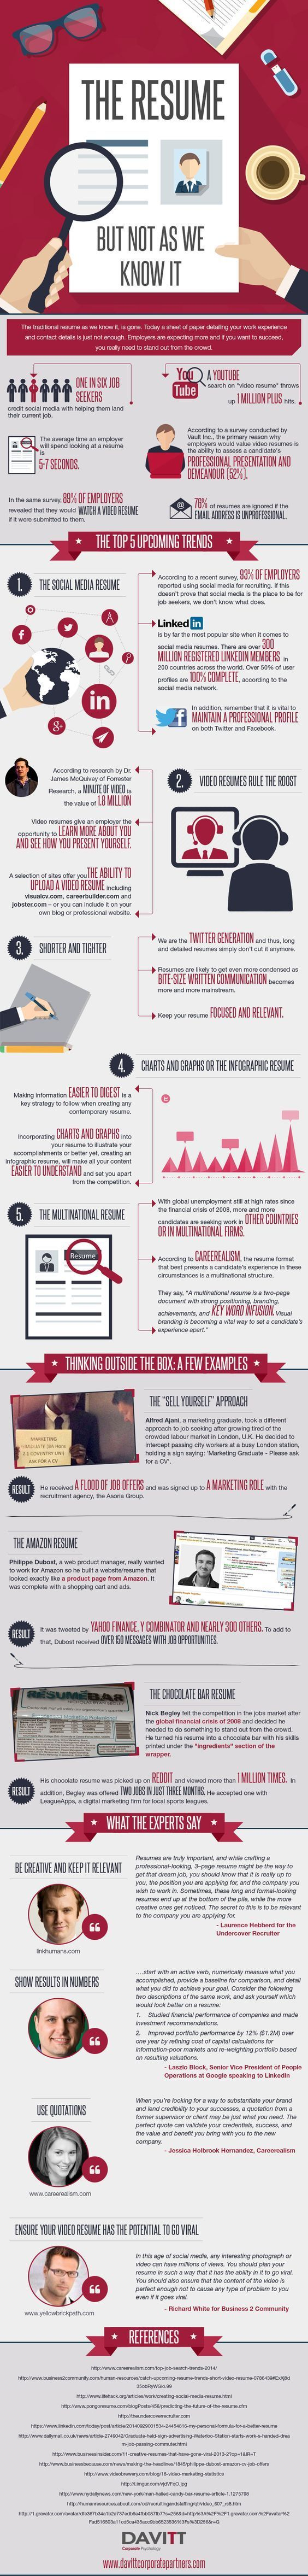 3 Types Of Resumes Gorgeous Handy Infographic On Things To Think About When Deciding What Type .